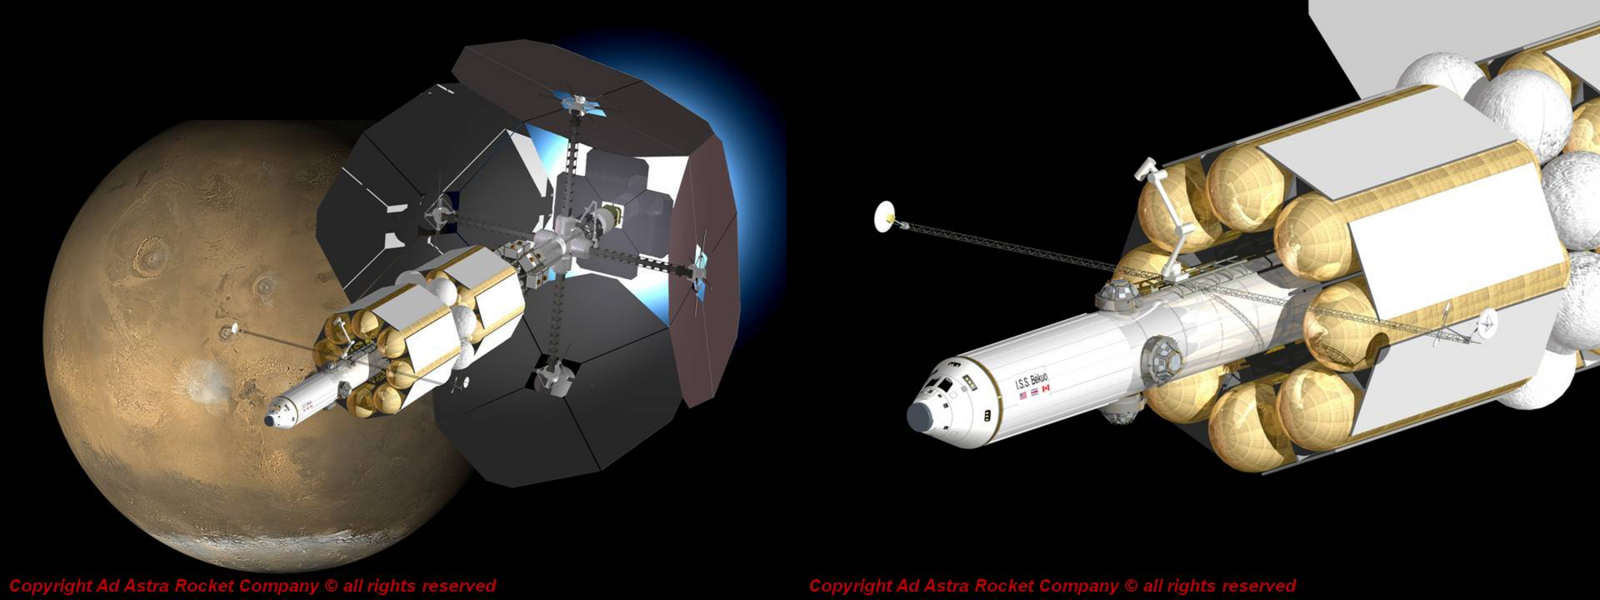 Artist's impression of a 200-megawatt VASIMR spacecraft. Images Credit: Ad Astra Rocket Company